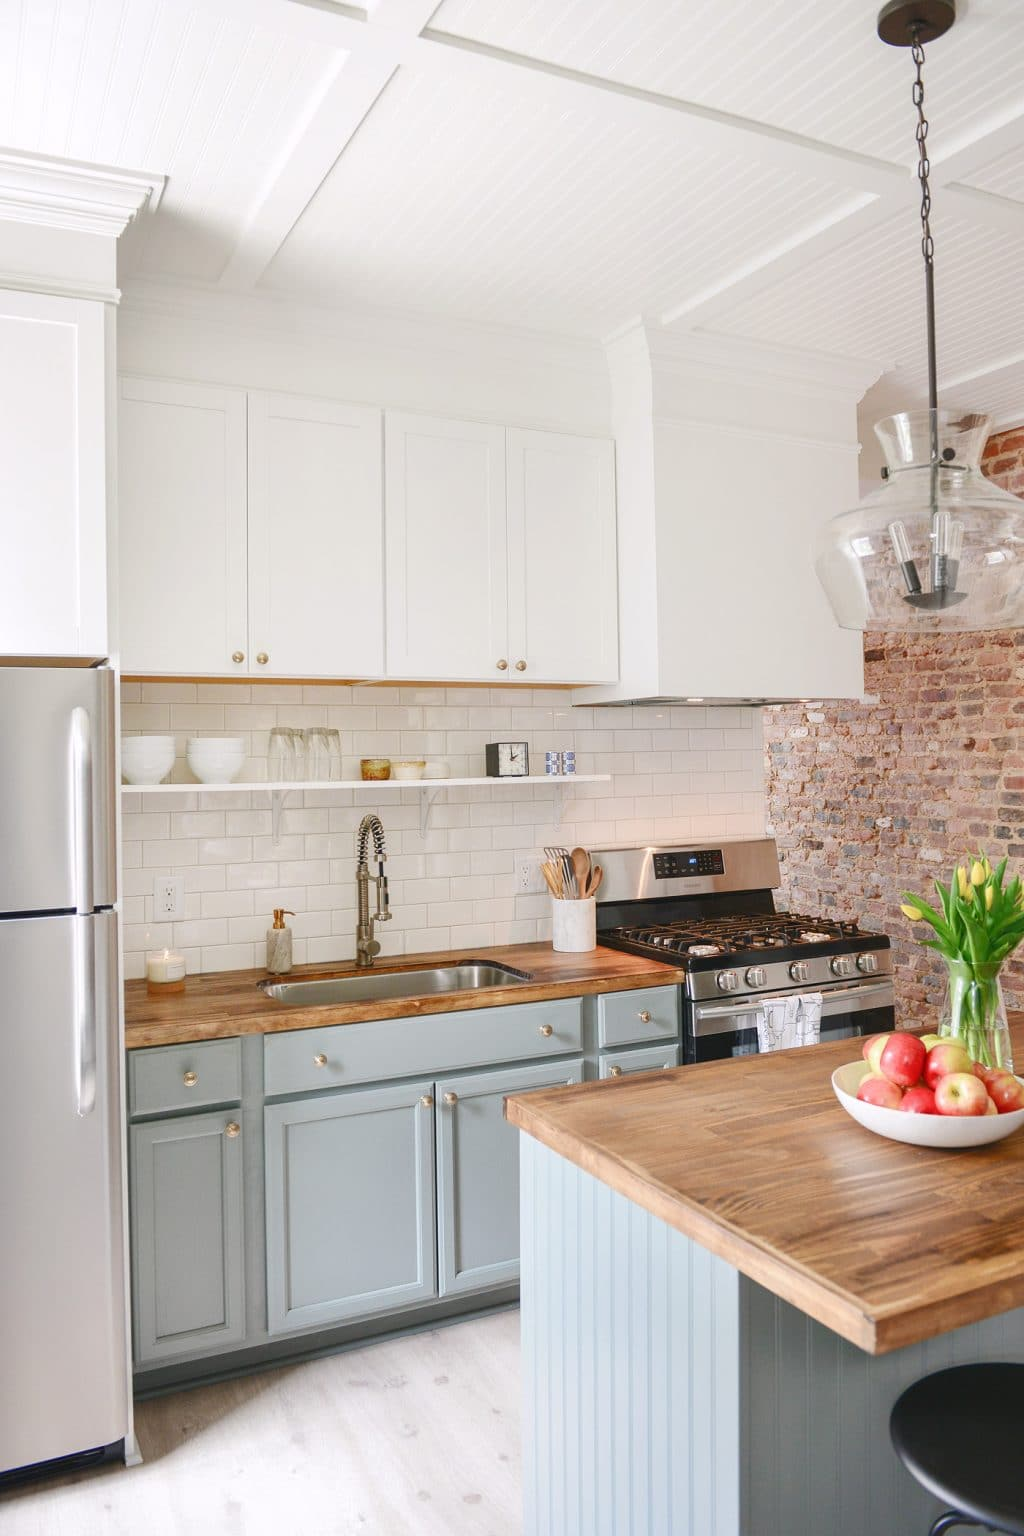 100 year old home gets a 3 Day Kitchen Makeover for less than $5K ...